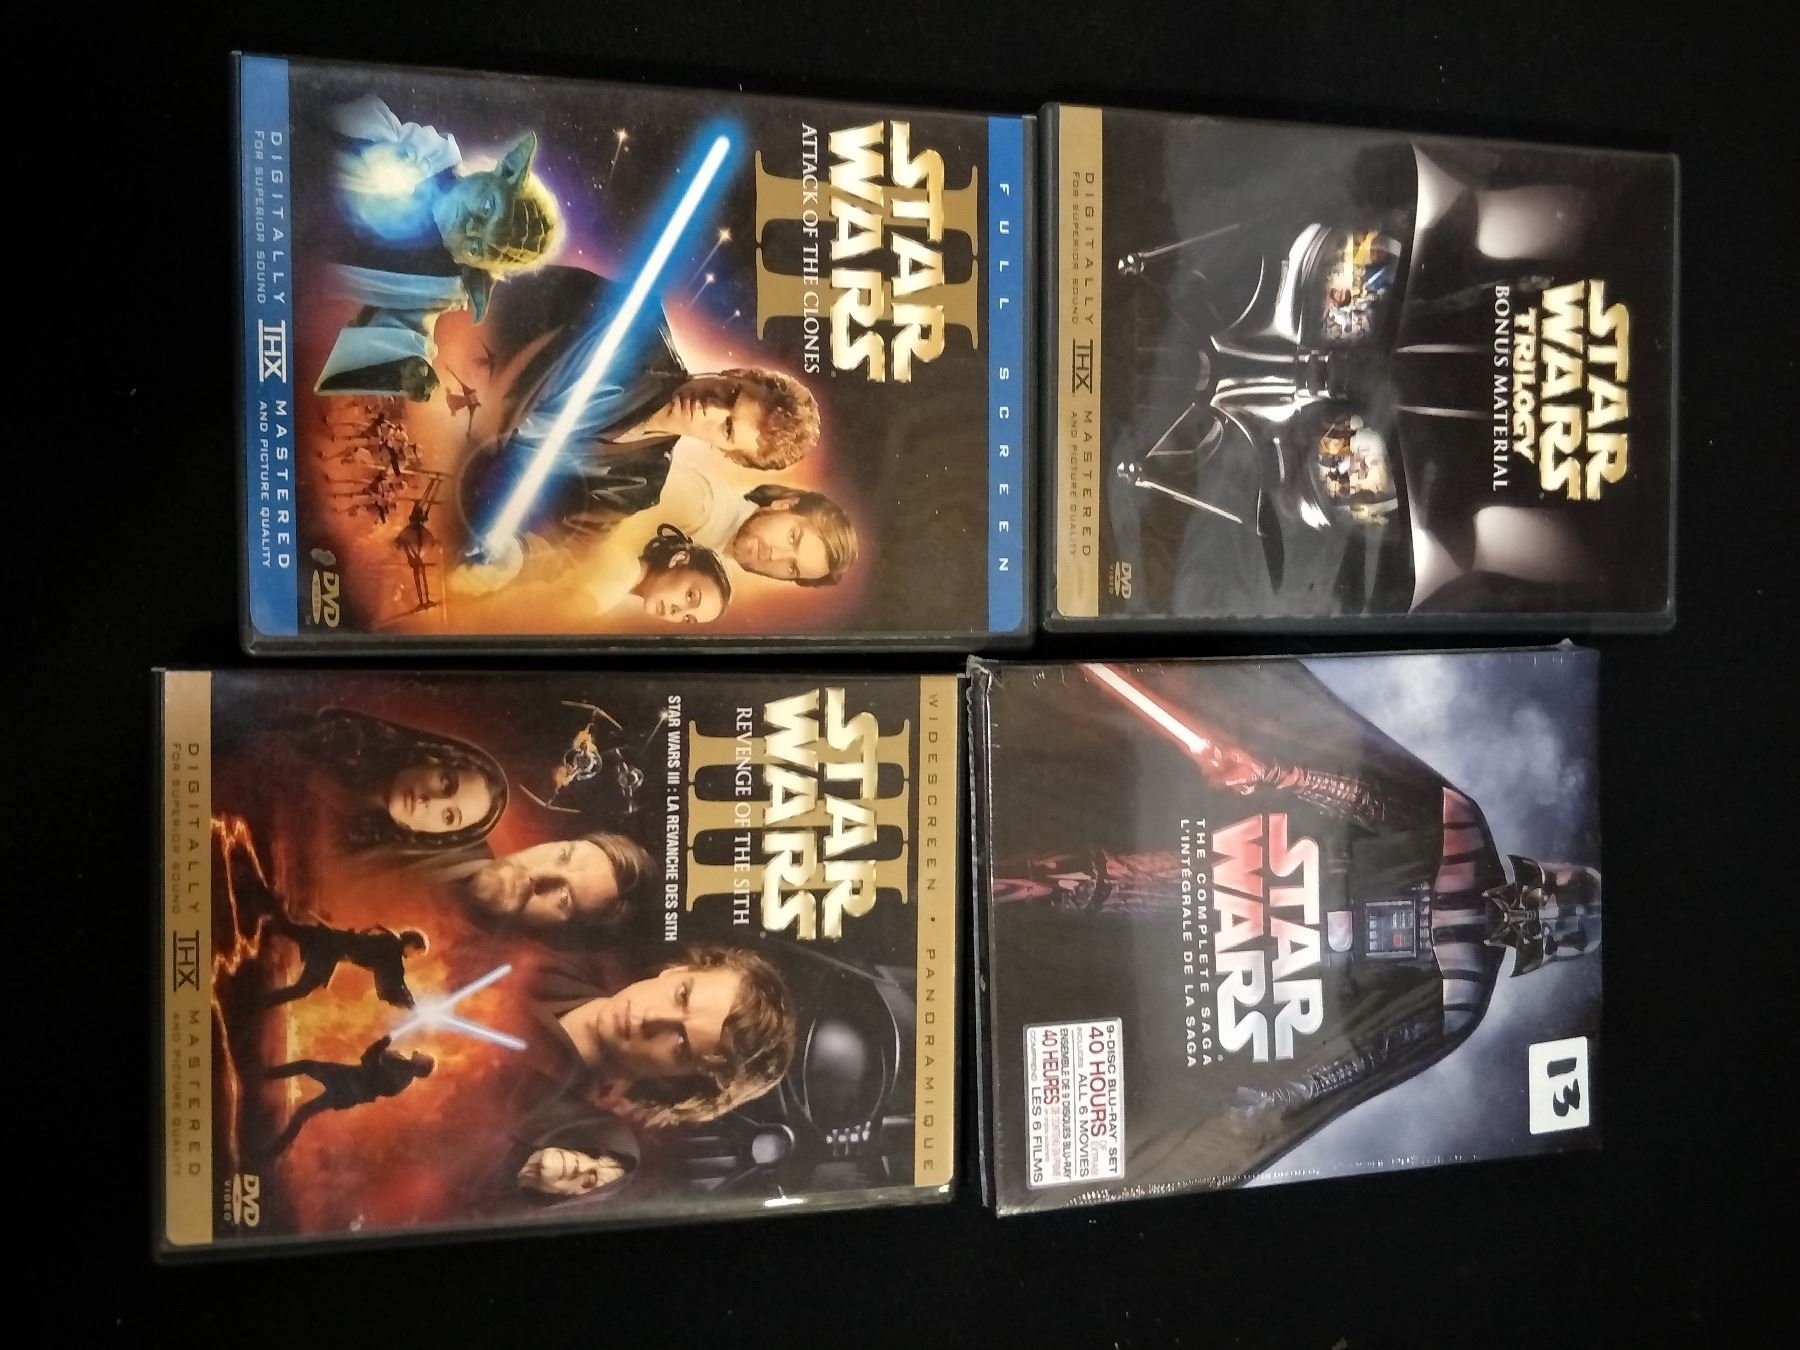 Starwars 3 Packs Revenge Of The Sith Attack Of The Clones Trilogy Material 9disc Blu Ray New 6 Movie